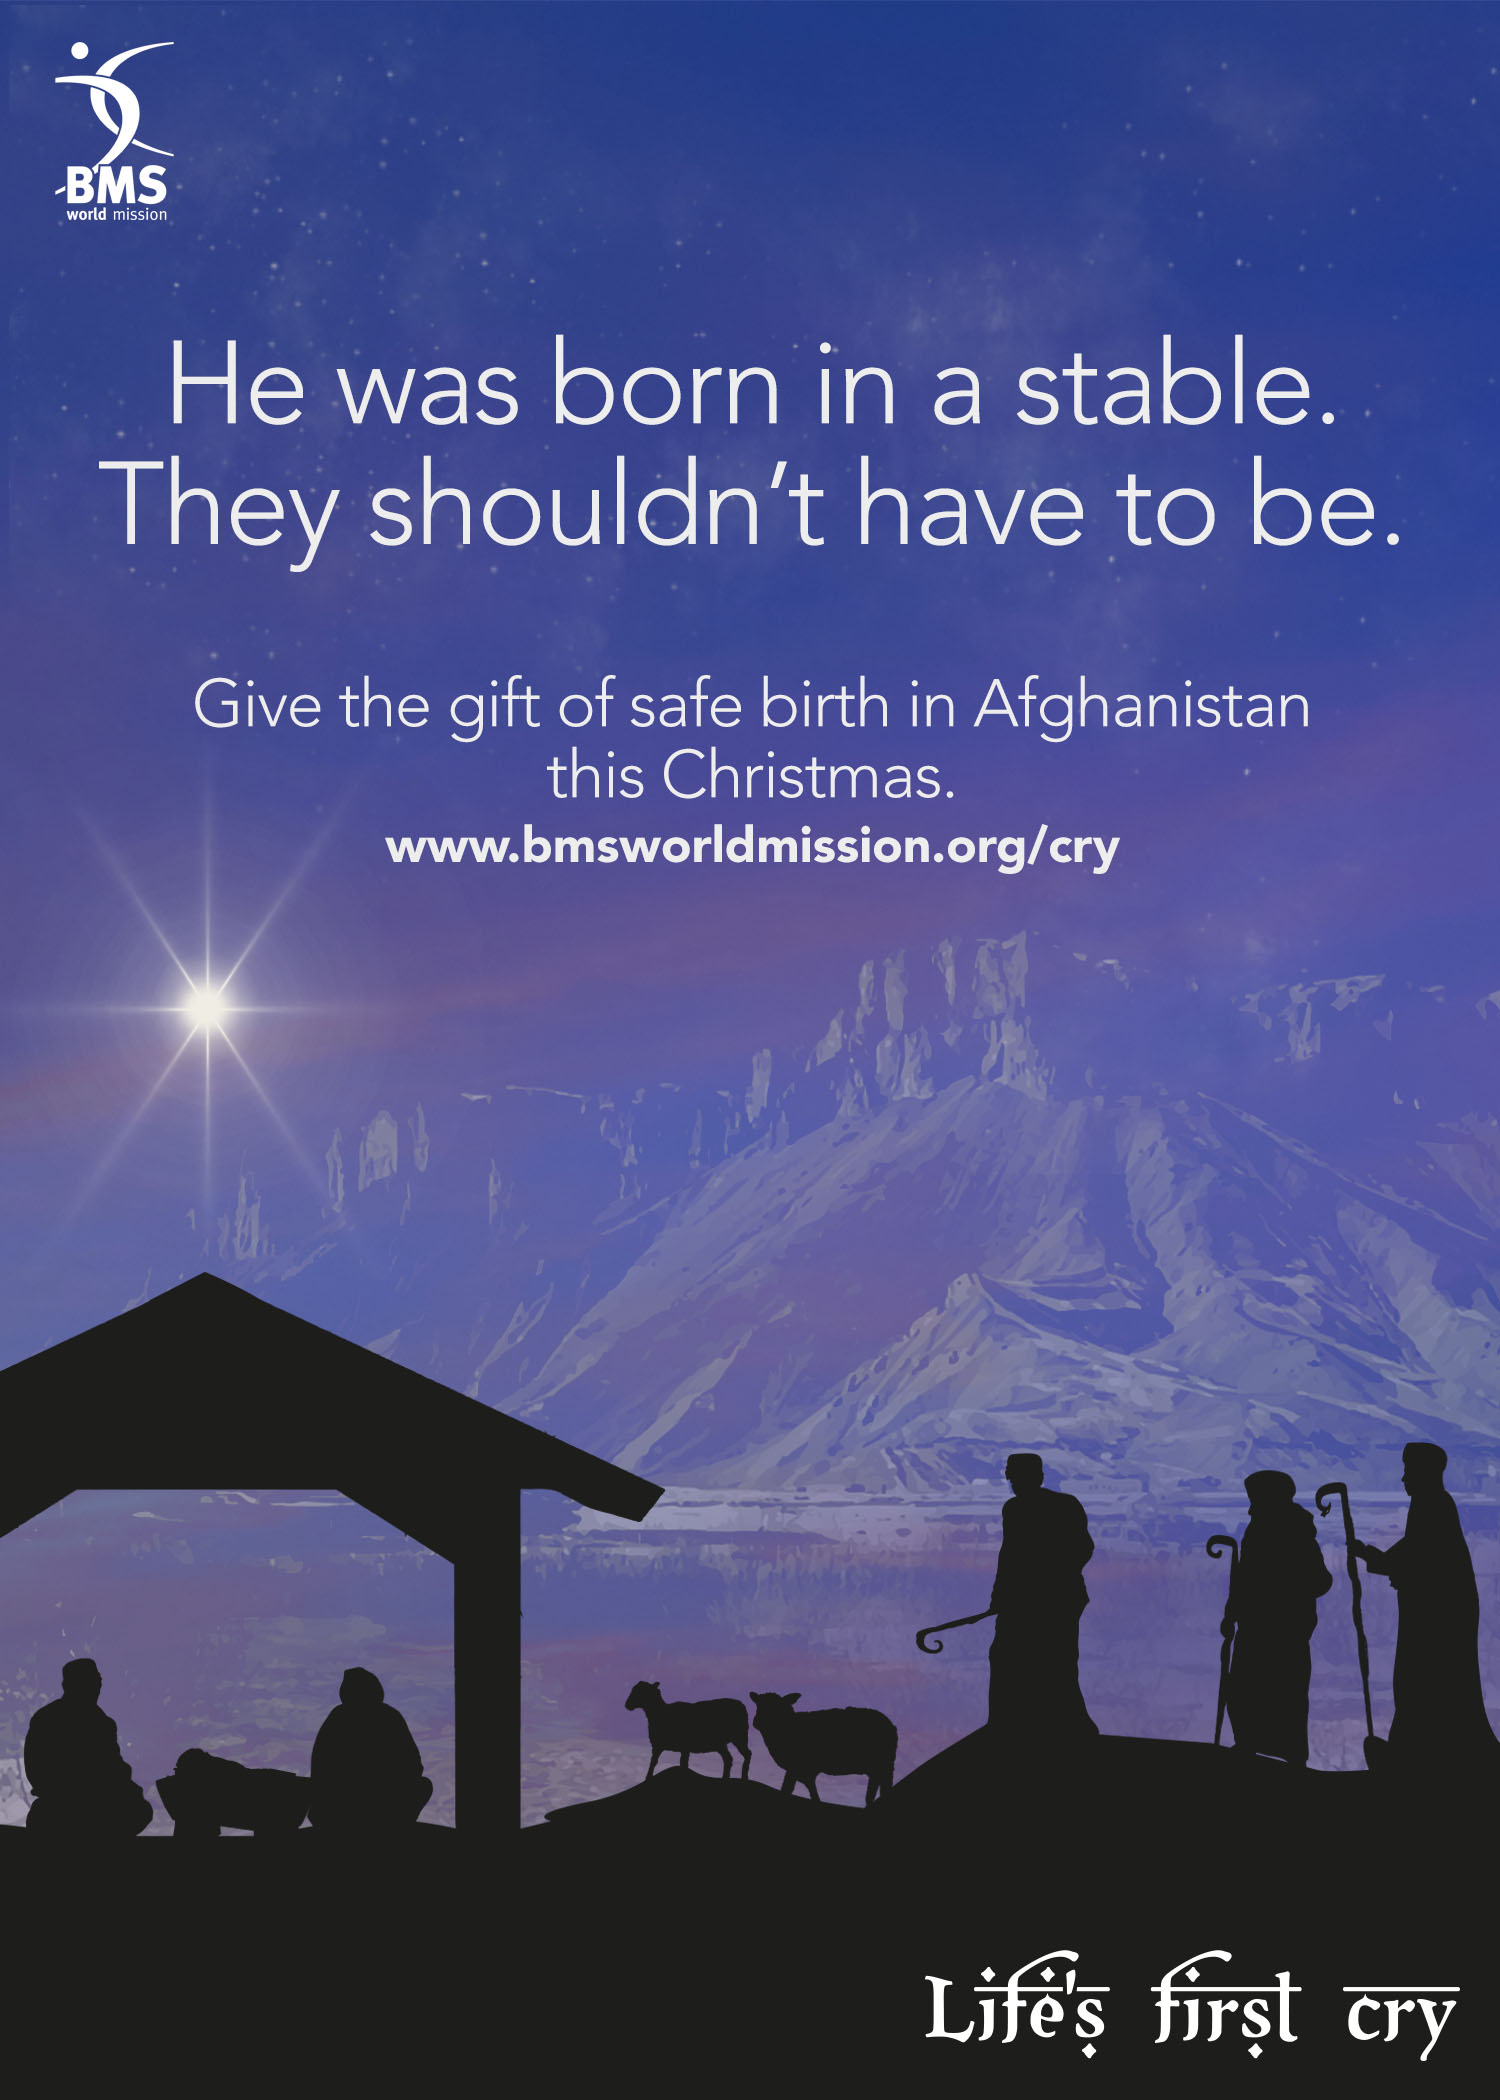 He was born in a stable. They shouldn't have to be.